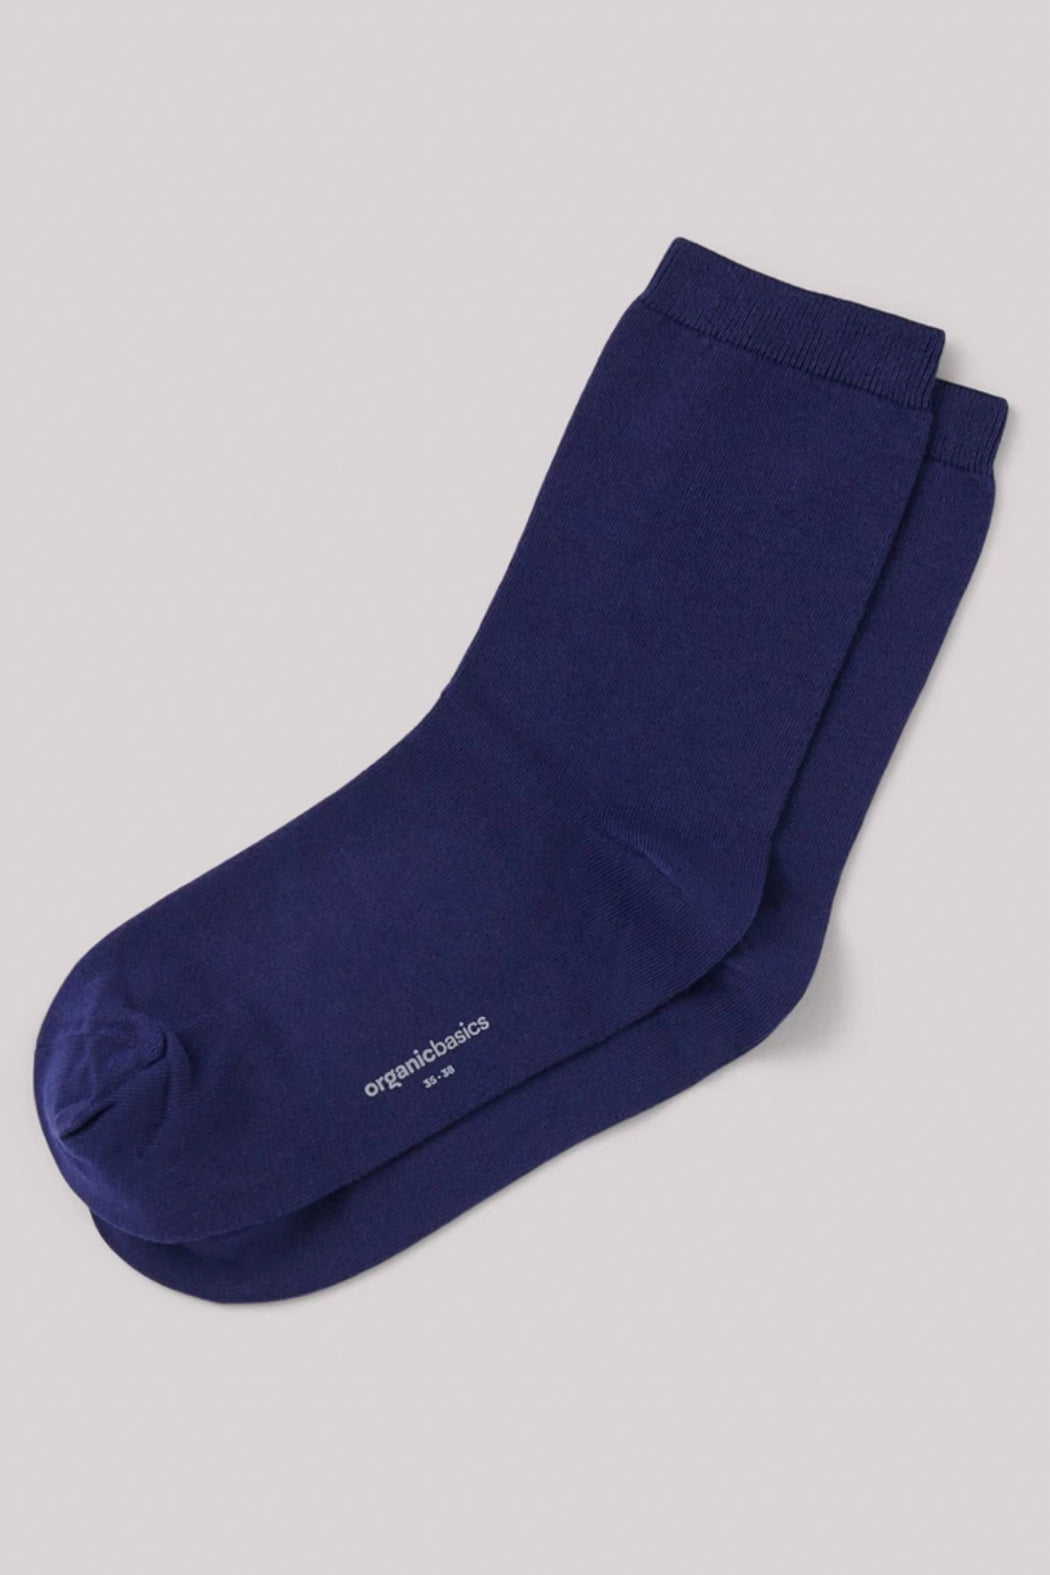 ORGANIC COTTON Socks cobalt